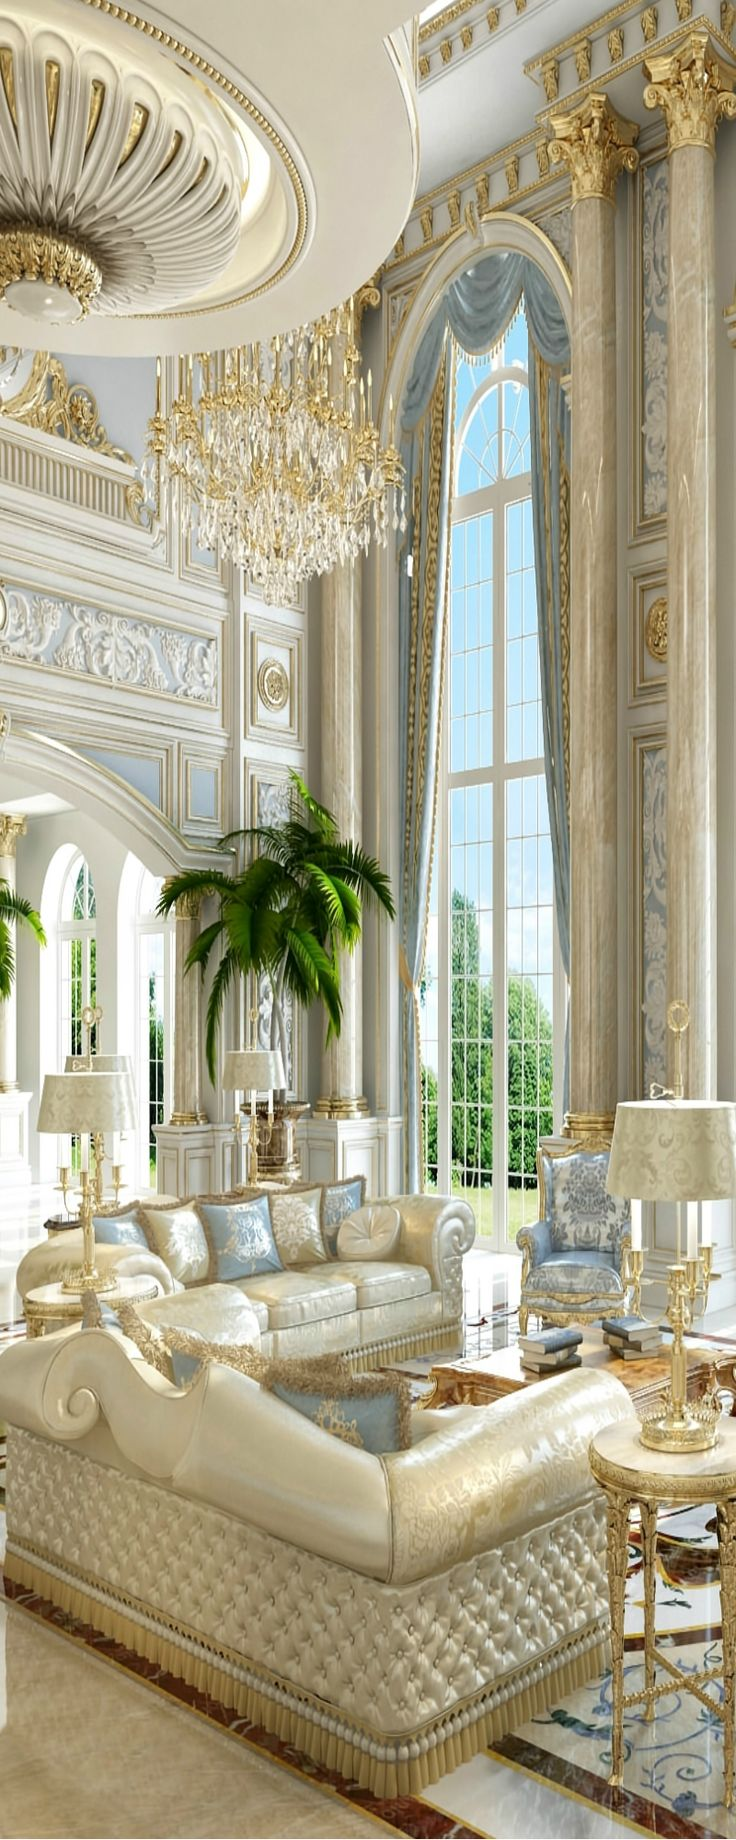 Best Luxury Interior Design Ideas On Pinterest Luxury